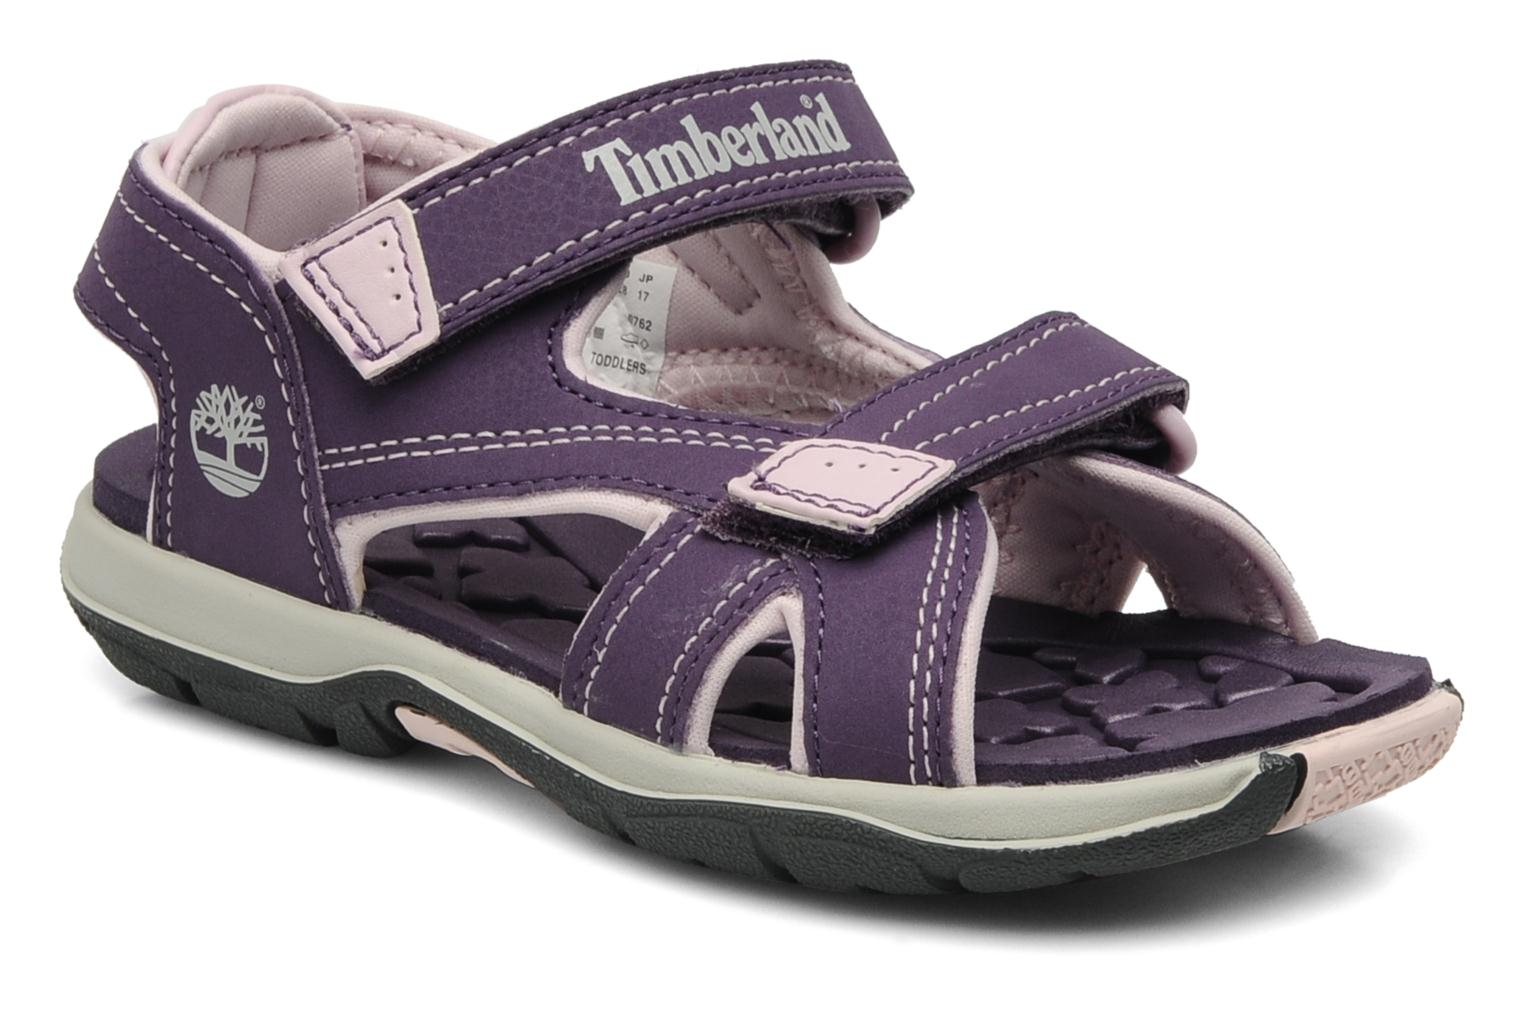 Sportschoenen Mad River 2-Strap Sandal by Timberland